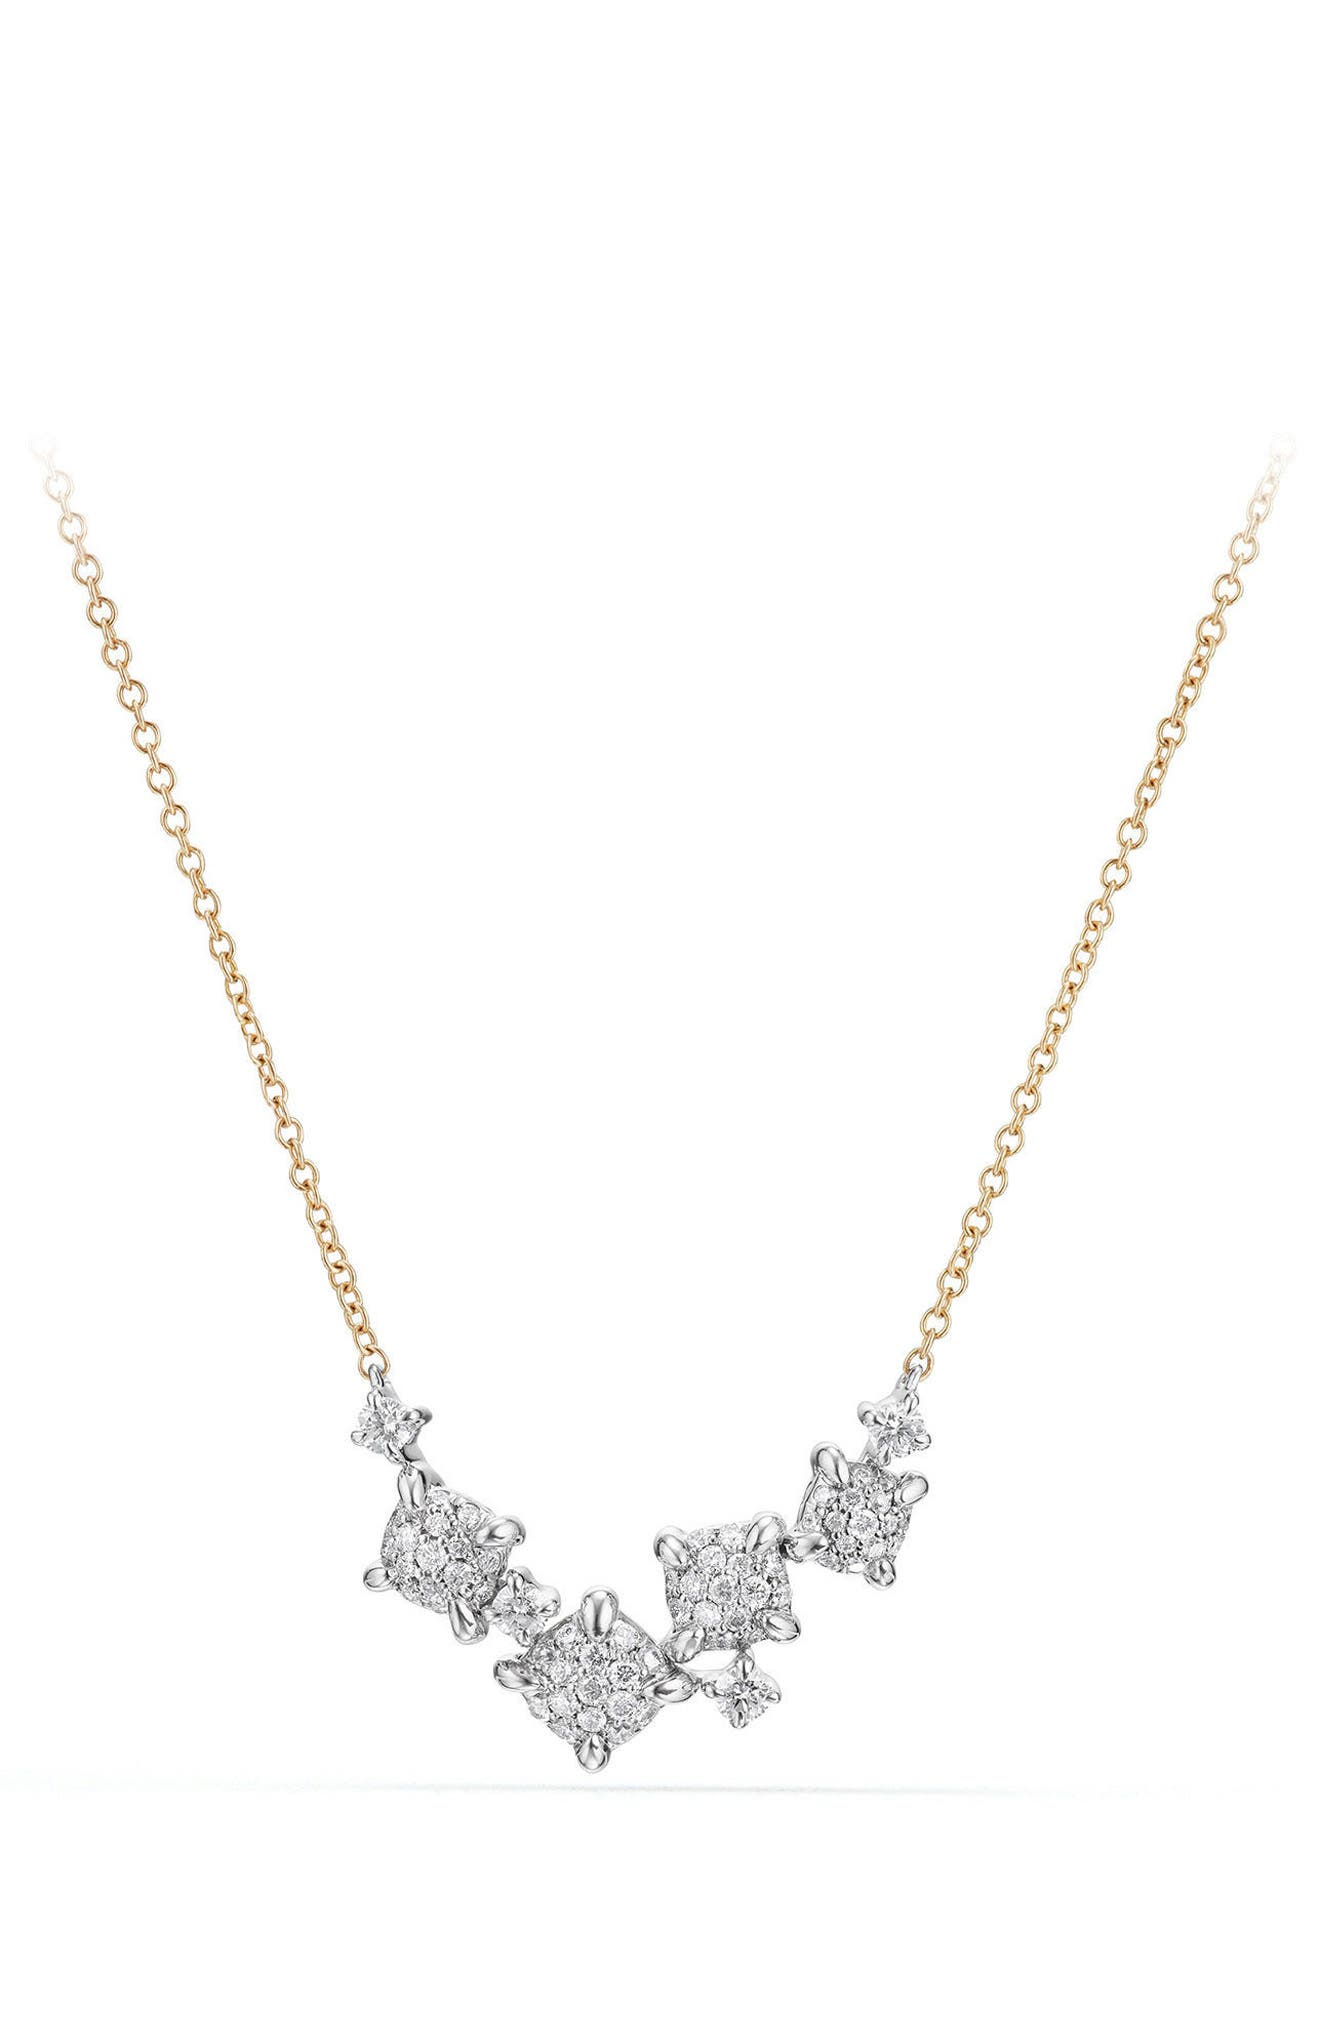 David Yurman Precious Châtelaine Necklace with Diamonds in 18K Gold